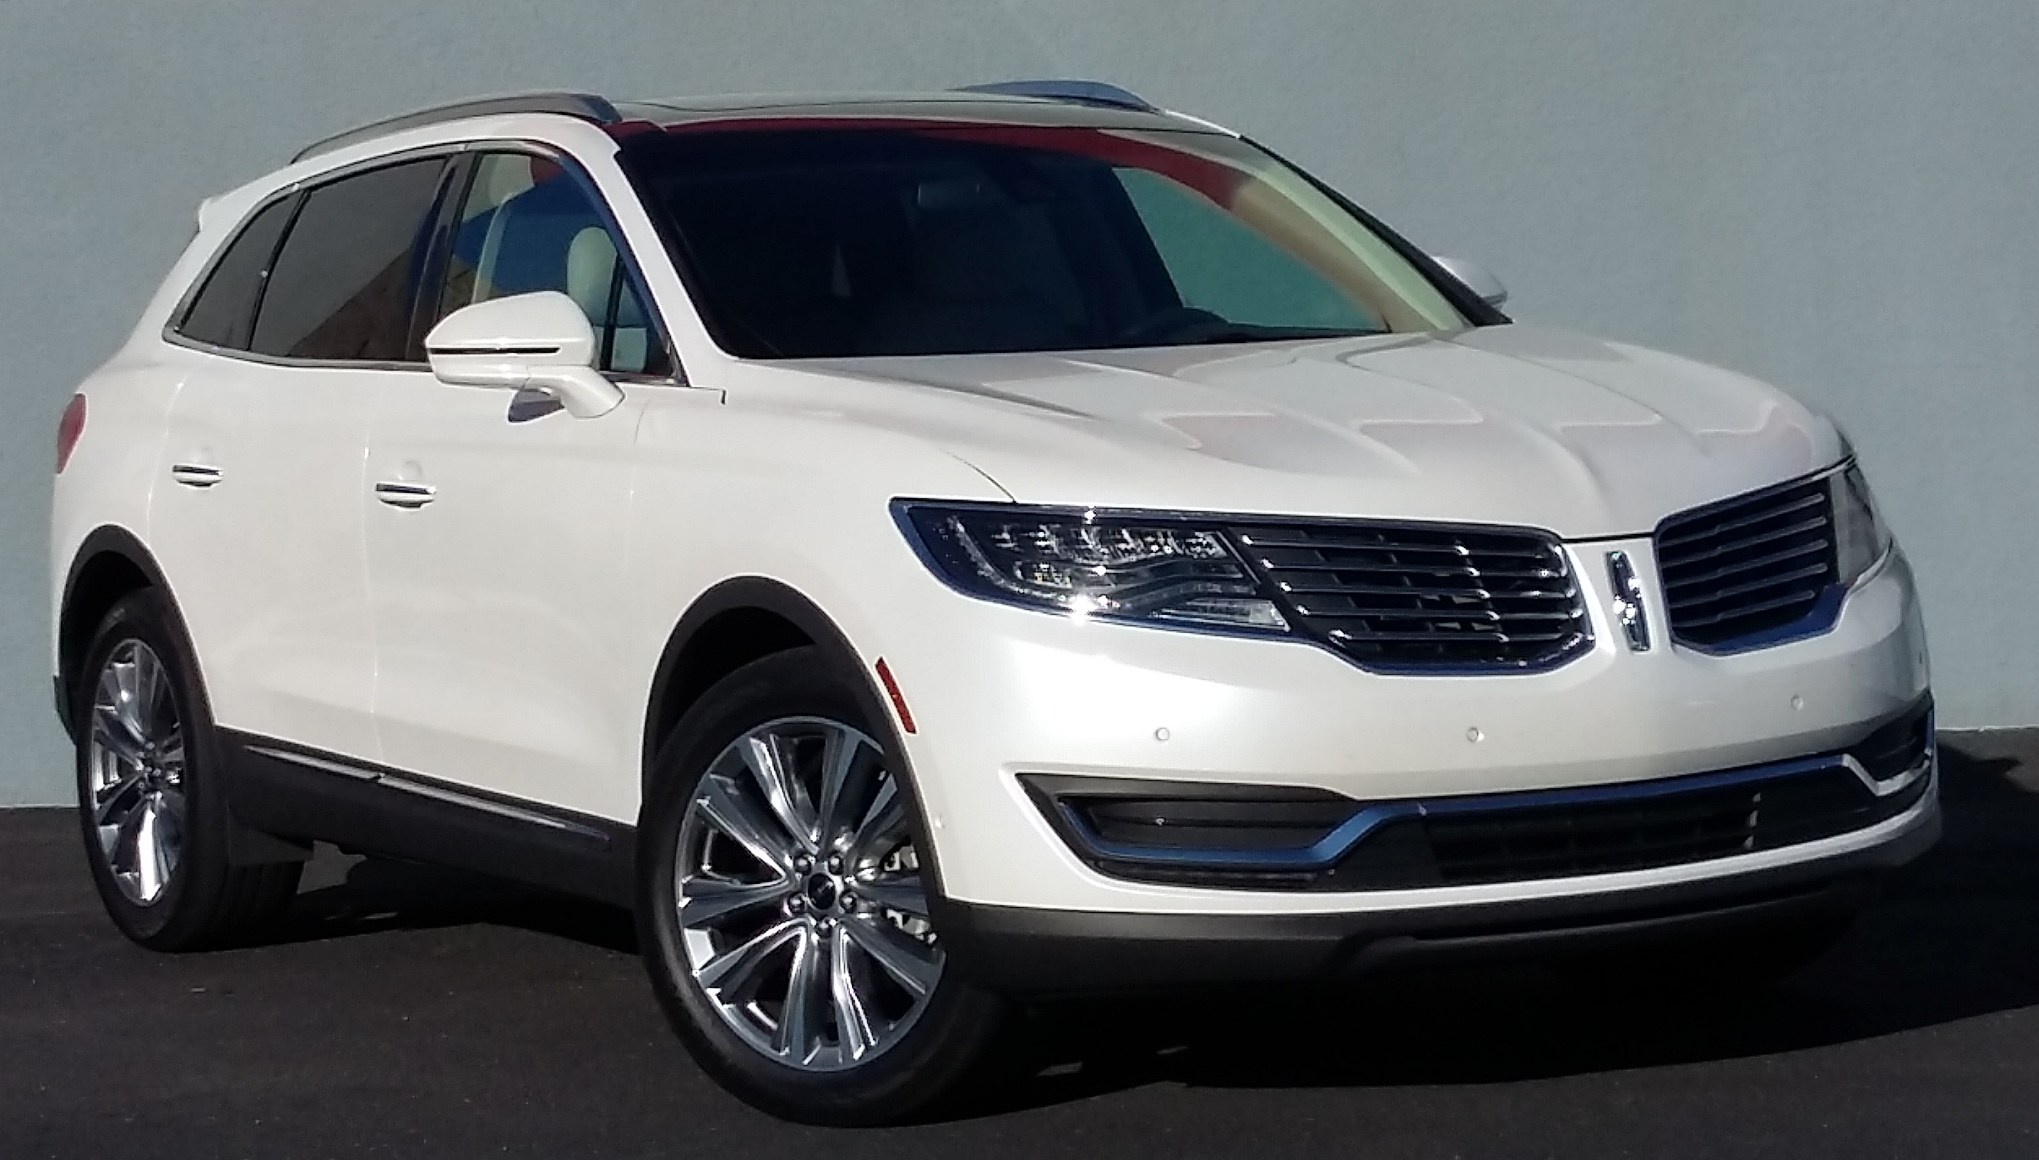 2016 Lincoln Mkt >> 2016 Lincoln Mkx The Daily Drive Consumer Guide